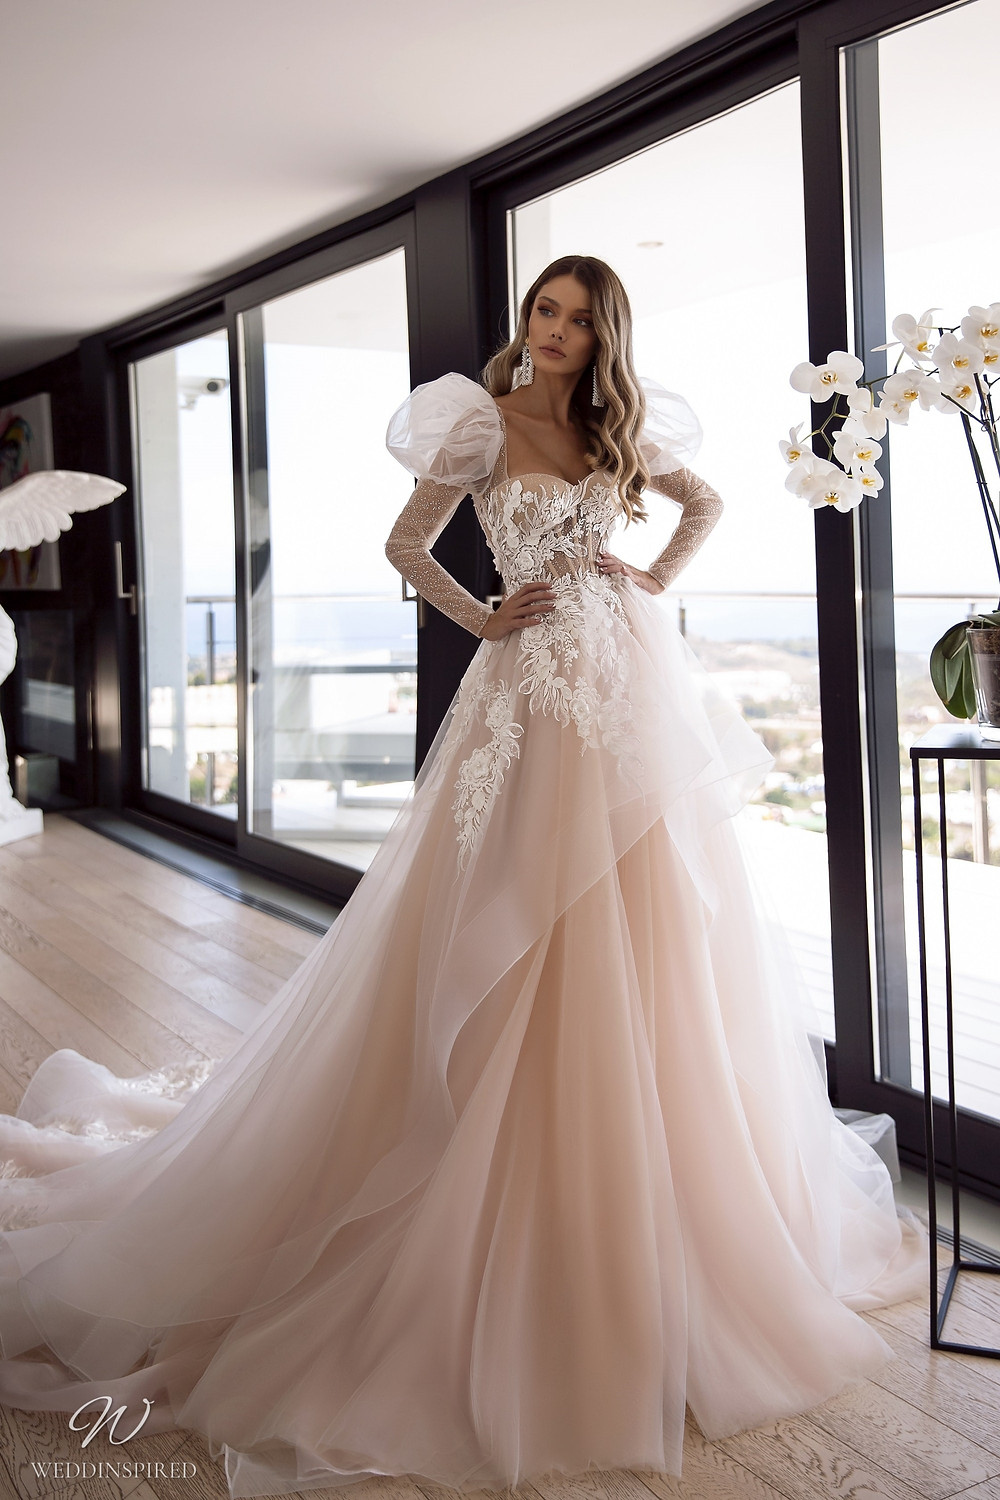 A Tina Valerdi romantic blush princess ball gown wedding dress with a tulle skirt and long sleeves